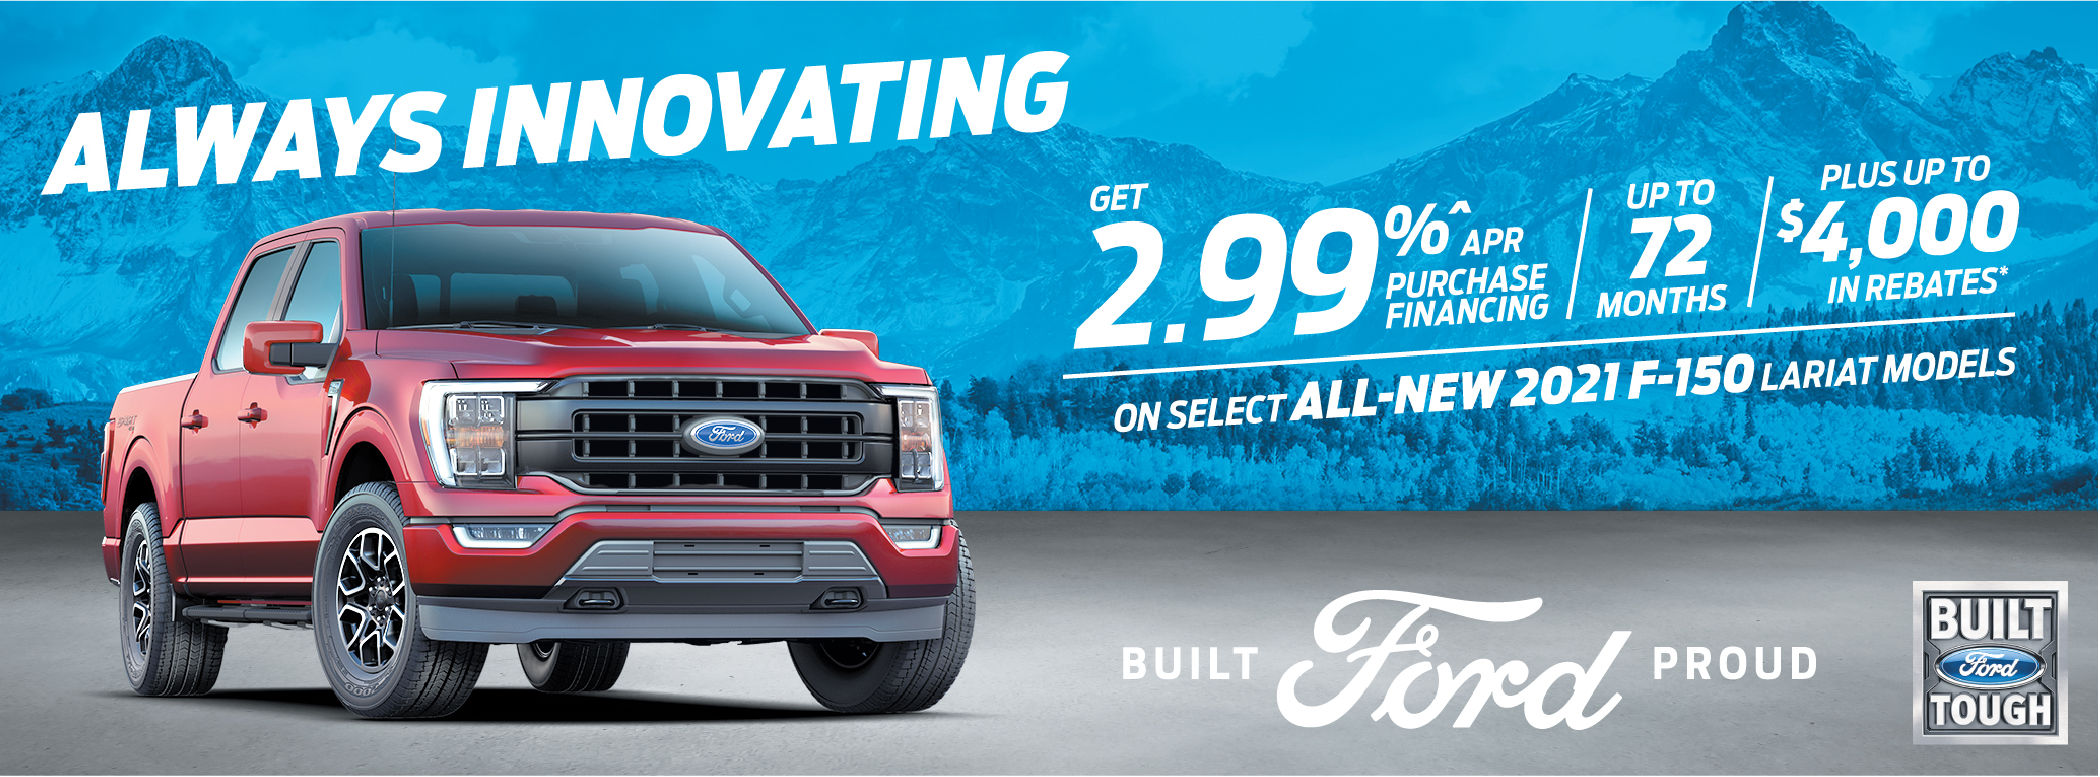 f-150 ford 2021